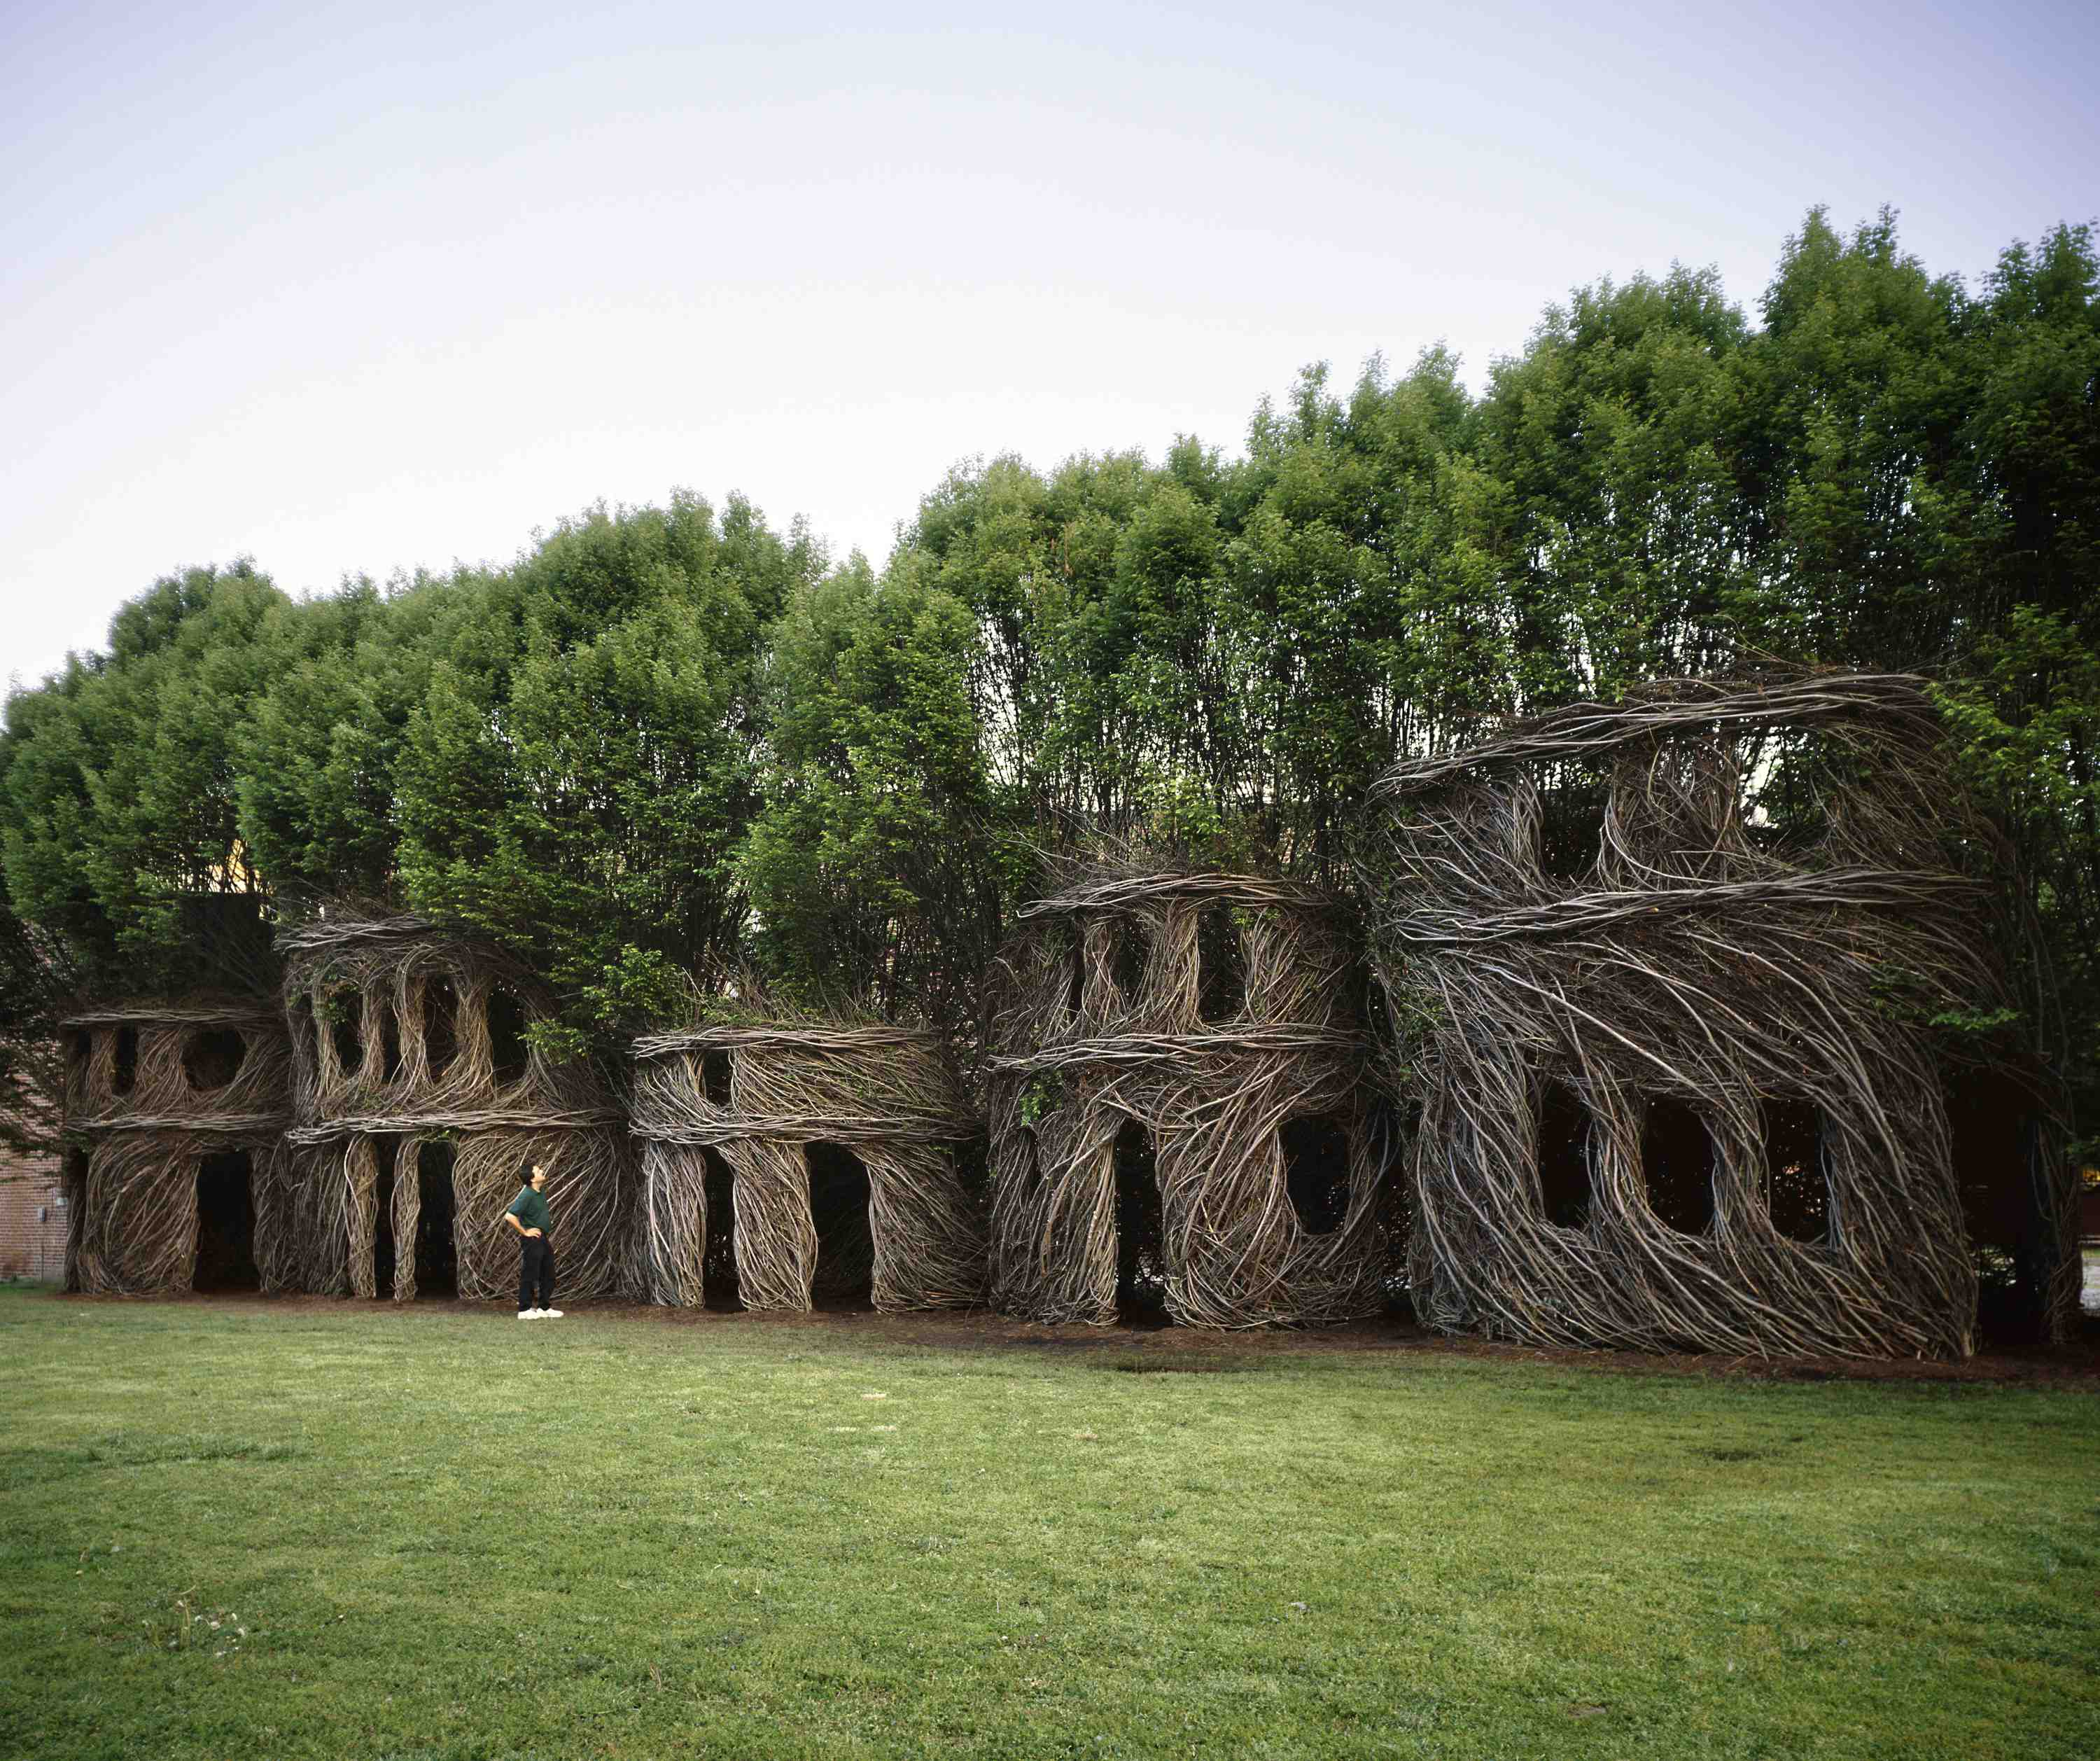 The mysterious creatures of Patrick Dougherty